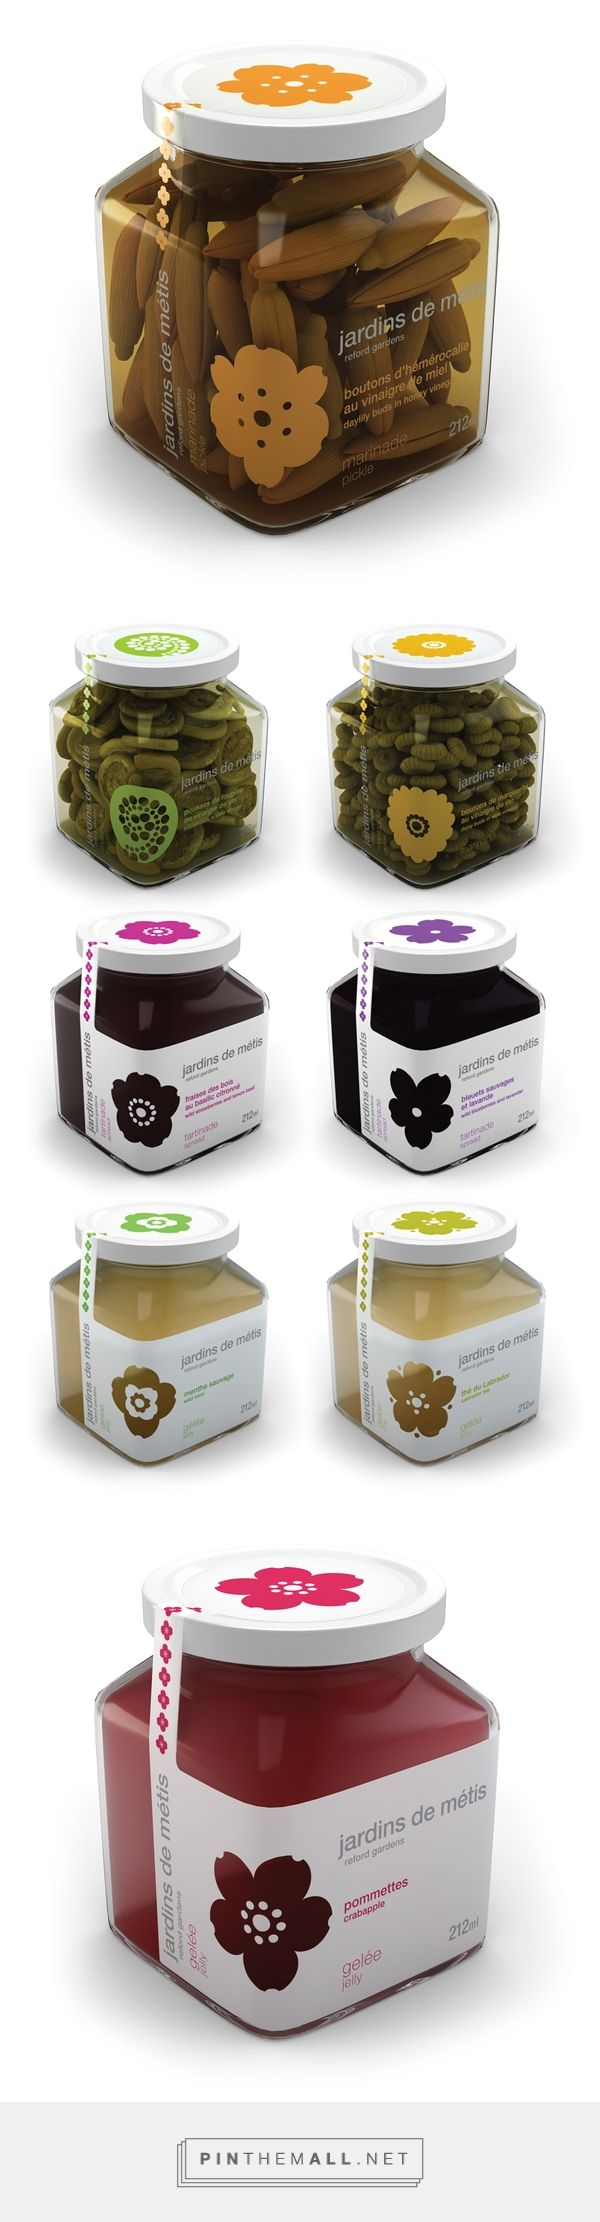 Reford Gardens packaging Jardins de Métis by Patricia Nadeua on Behance curated by Packaging Diva PD. A line of culinary kitchen delights using flowers among the gardens, such as daylilies, fiddleheads and Labrador tea, created and produced by chef Pierre-Olivier Ferry and his team.